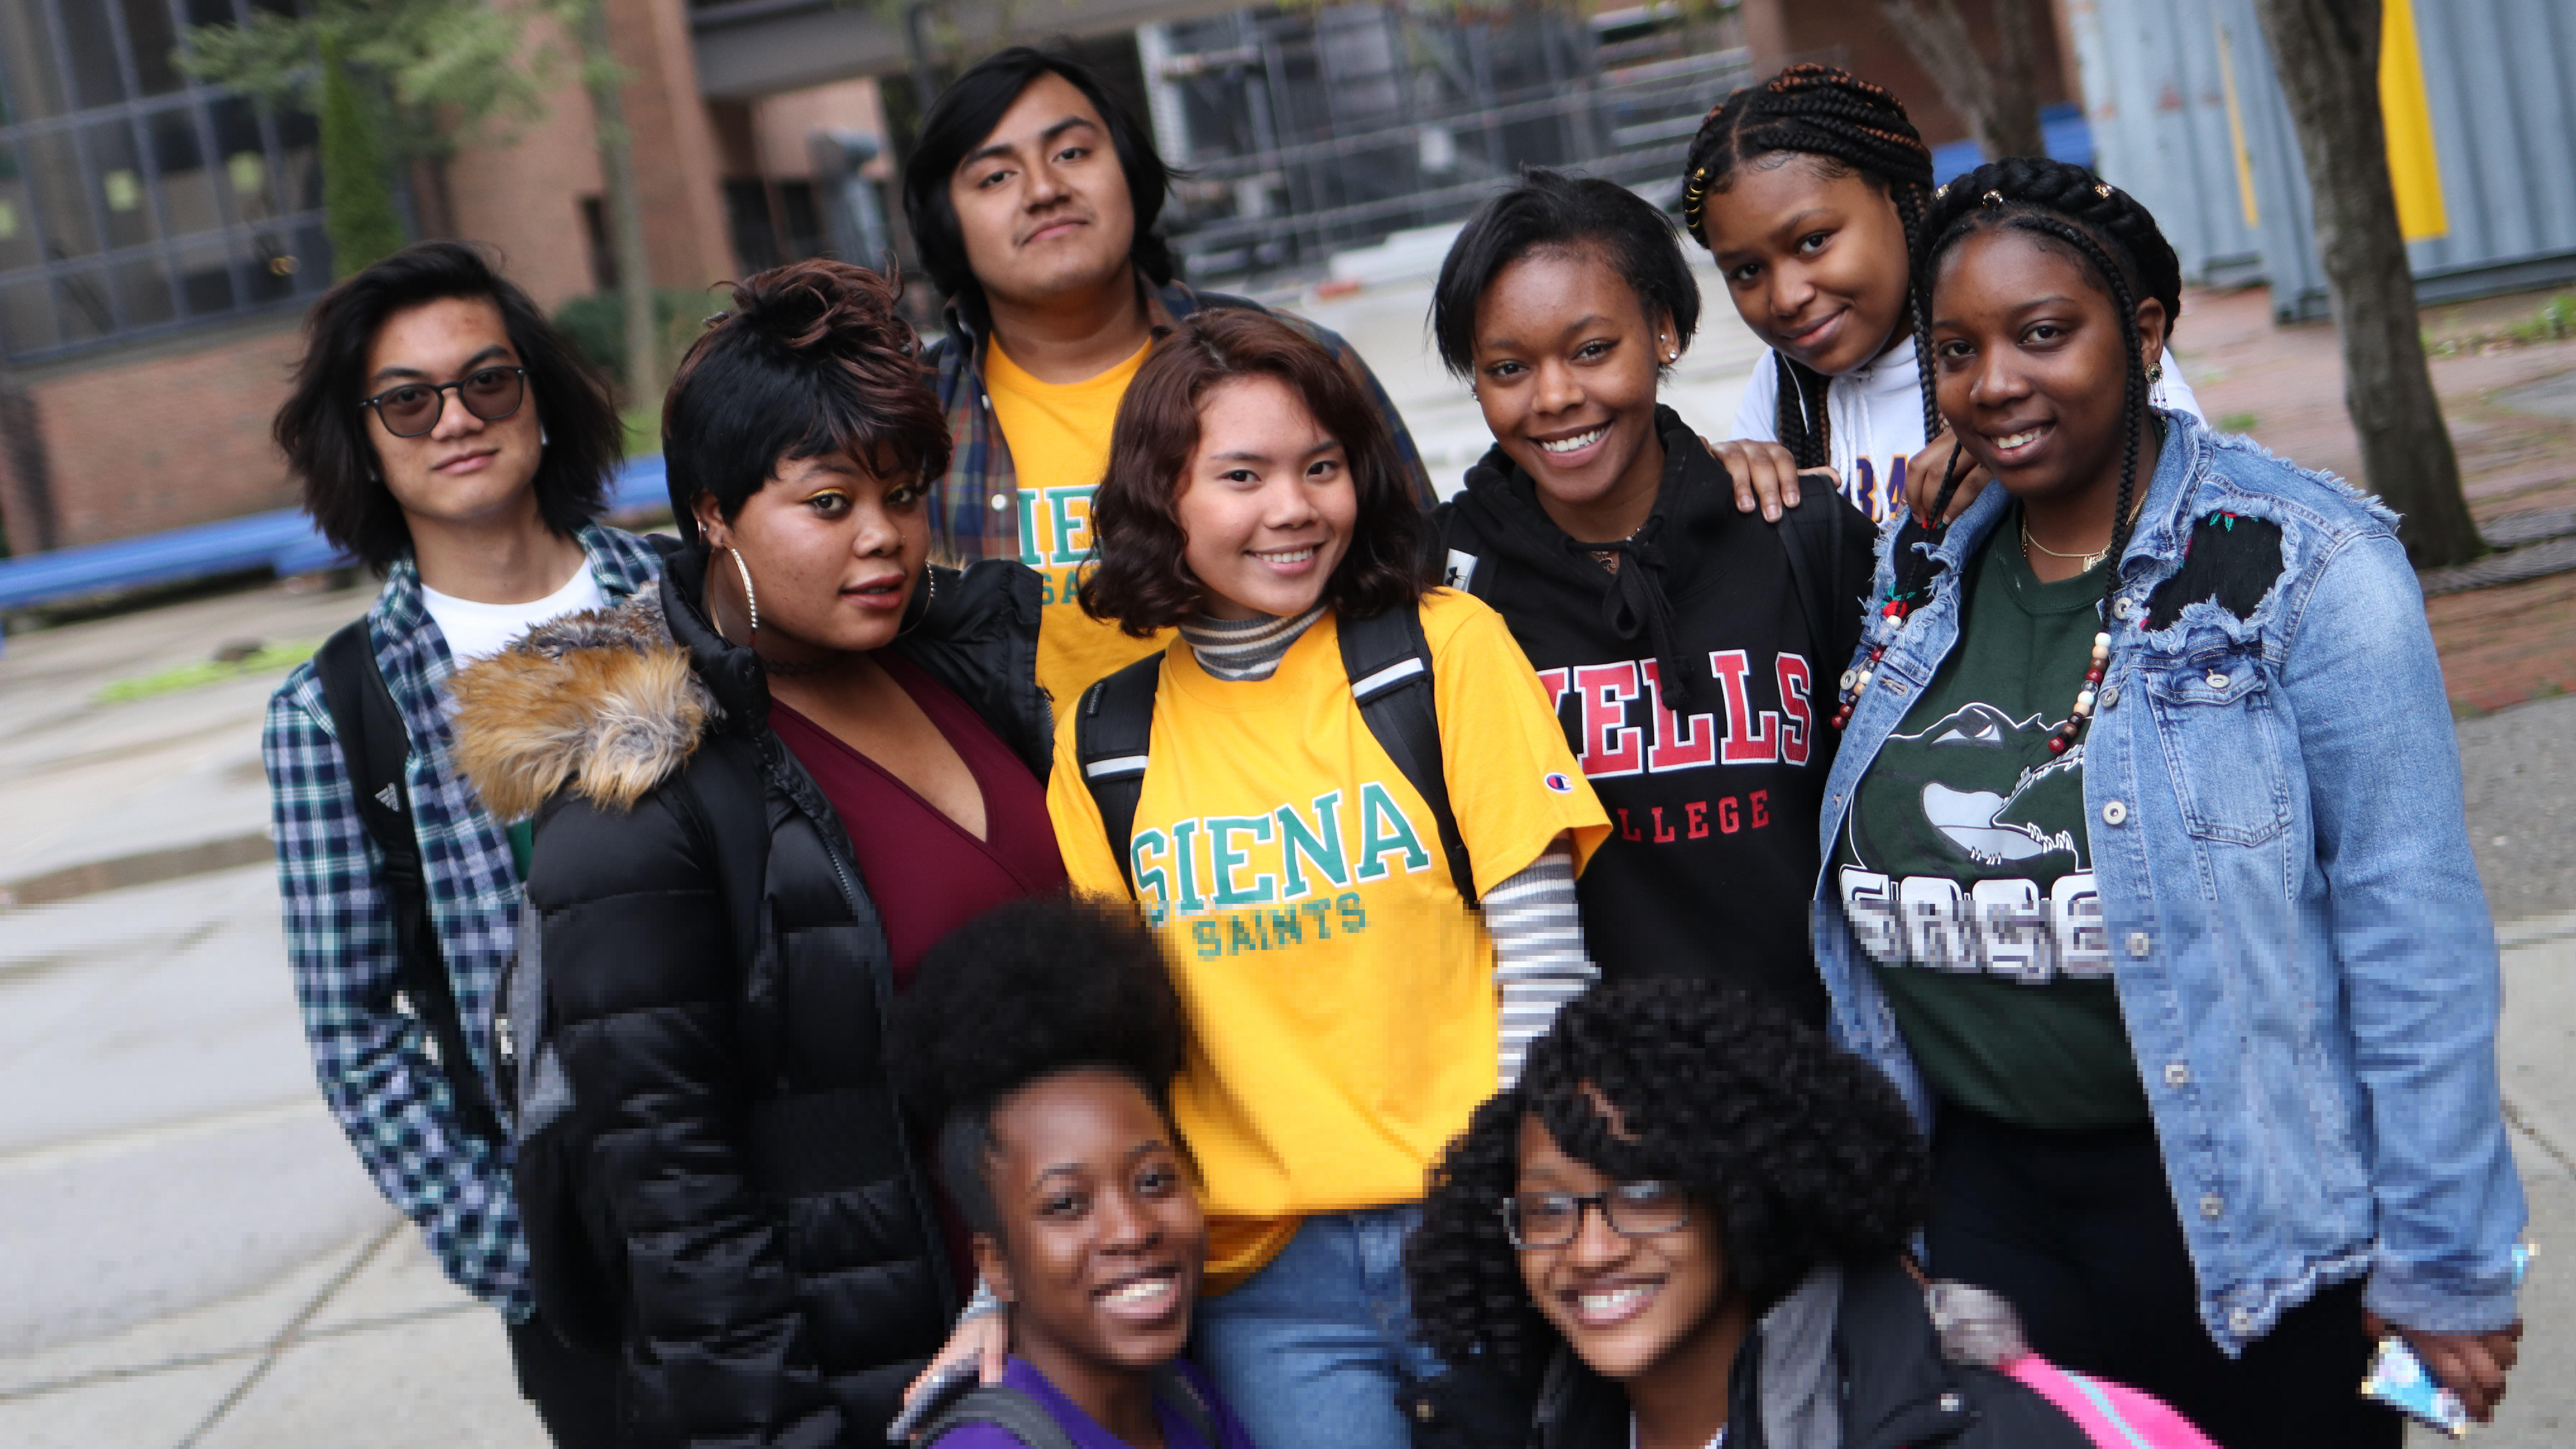 Group of students in their college shirts.